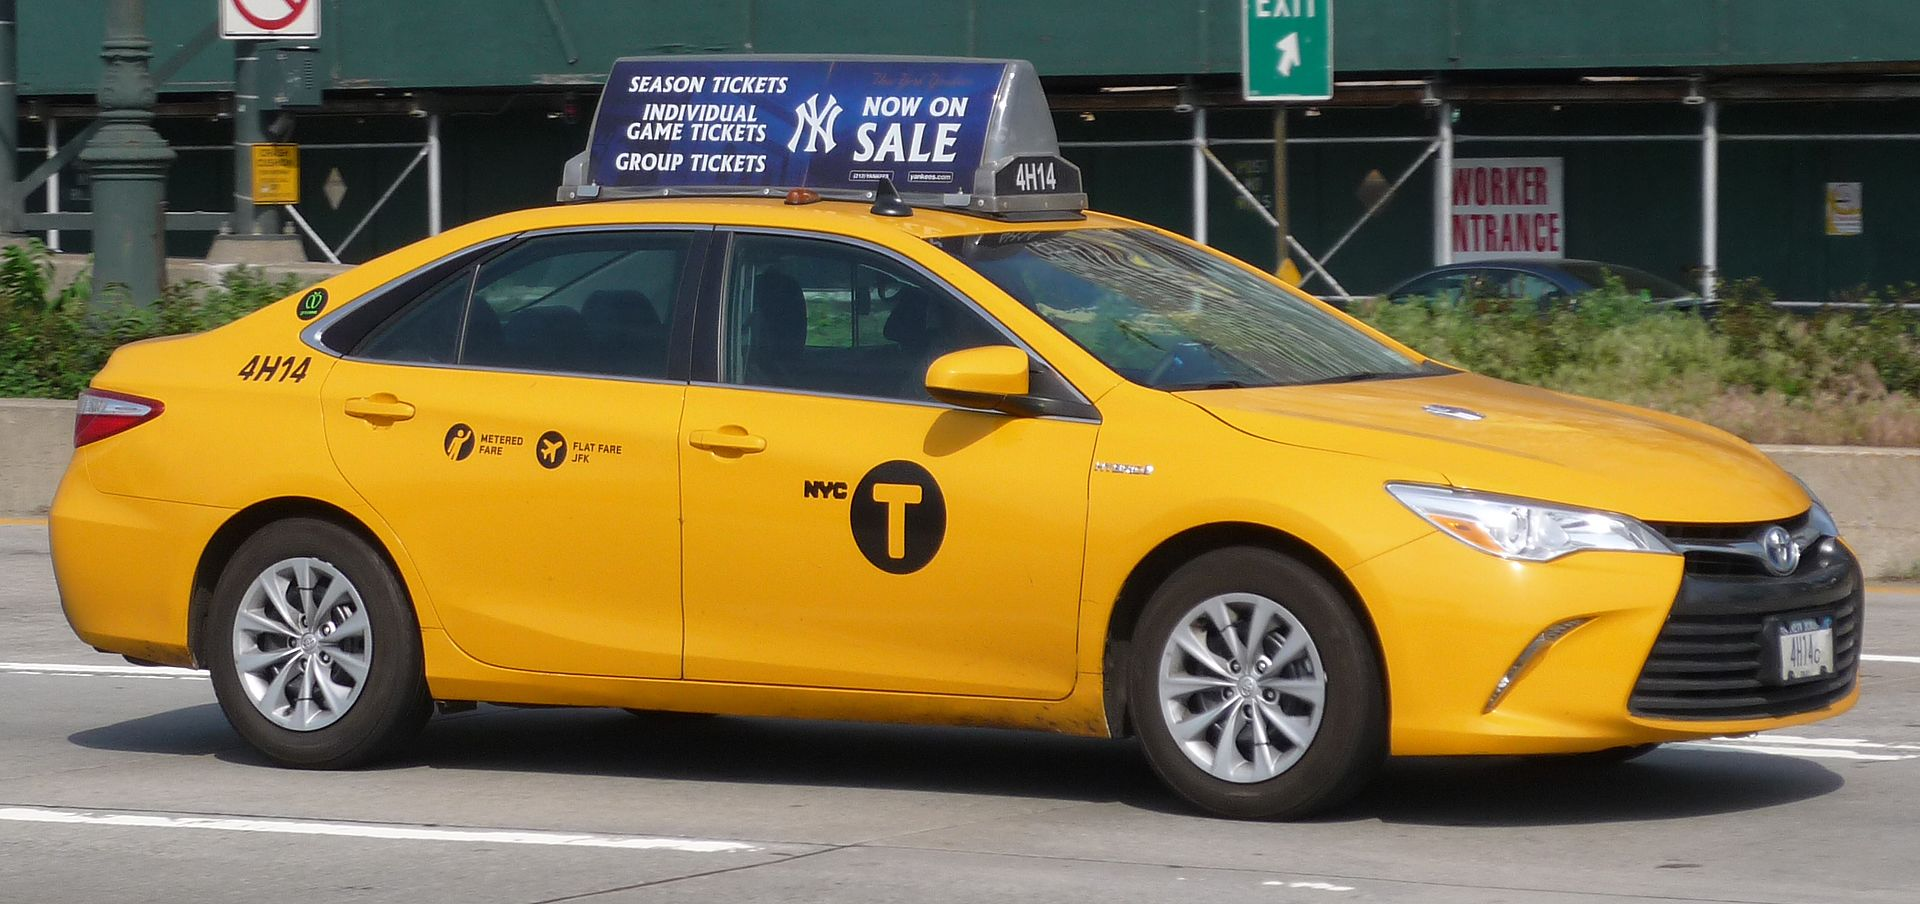 1920px-NYC_Taxi_Toyota_Camry.jpg